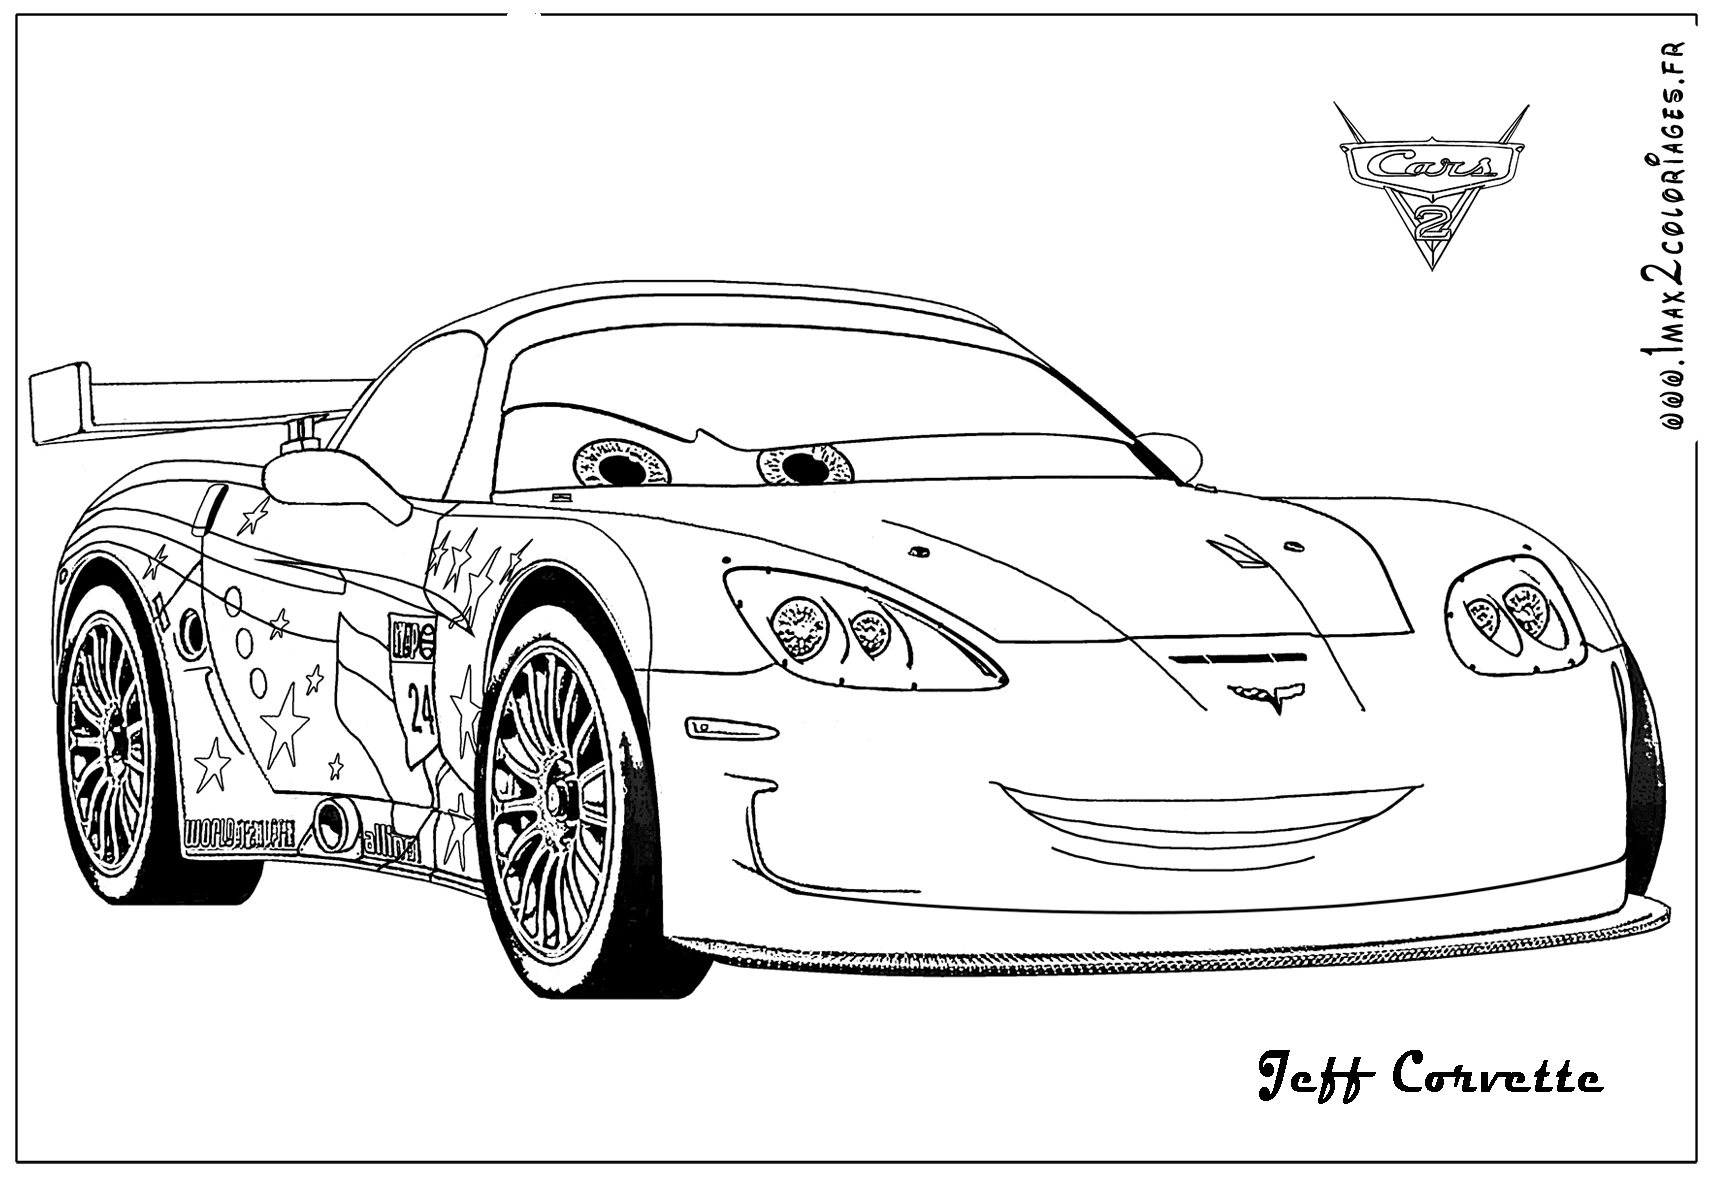 cars 2 coloring pages - Cars 2 Coloring Pages To Print